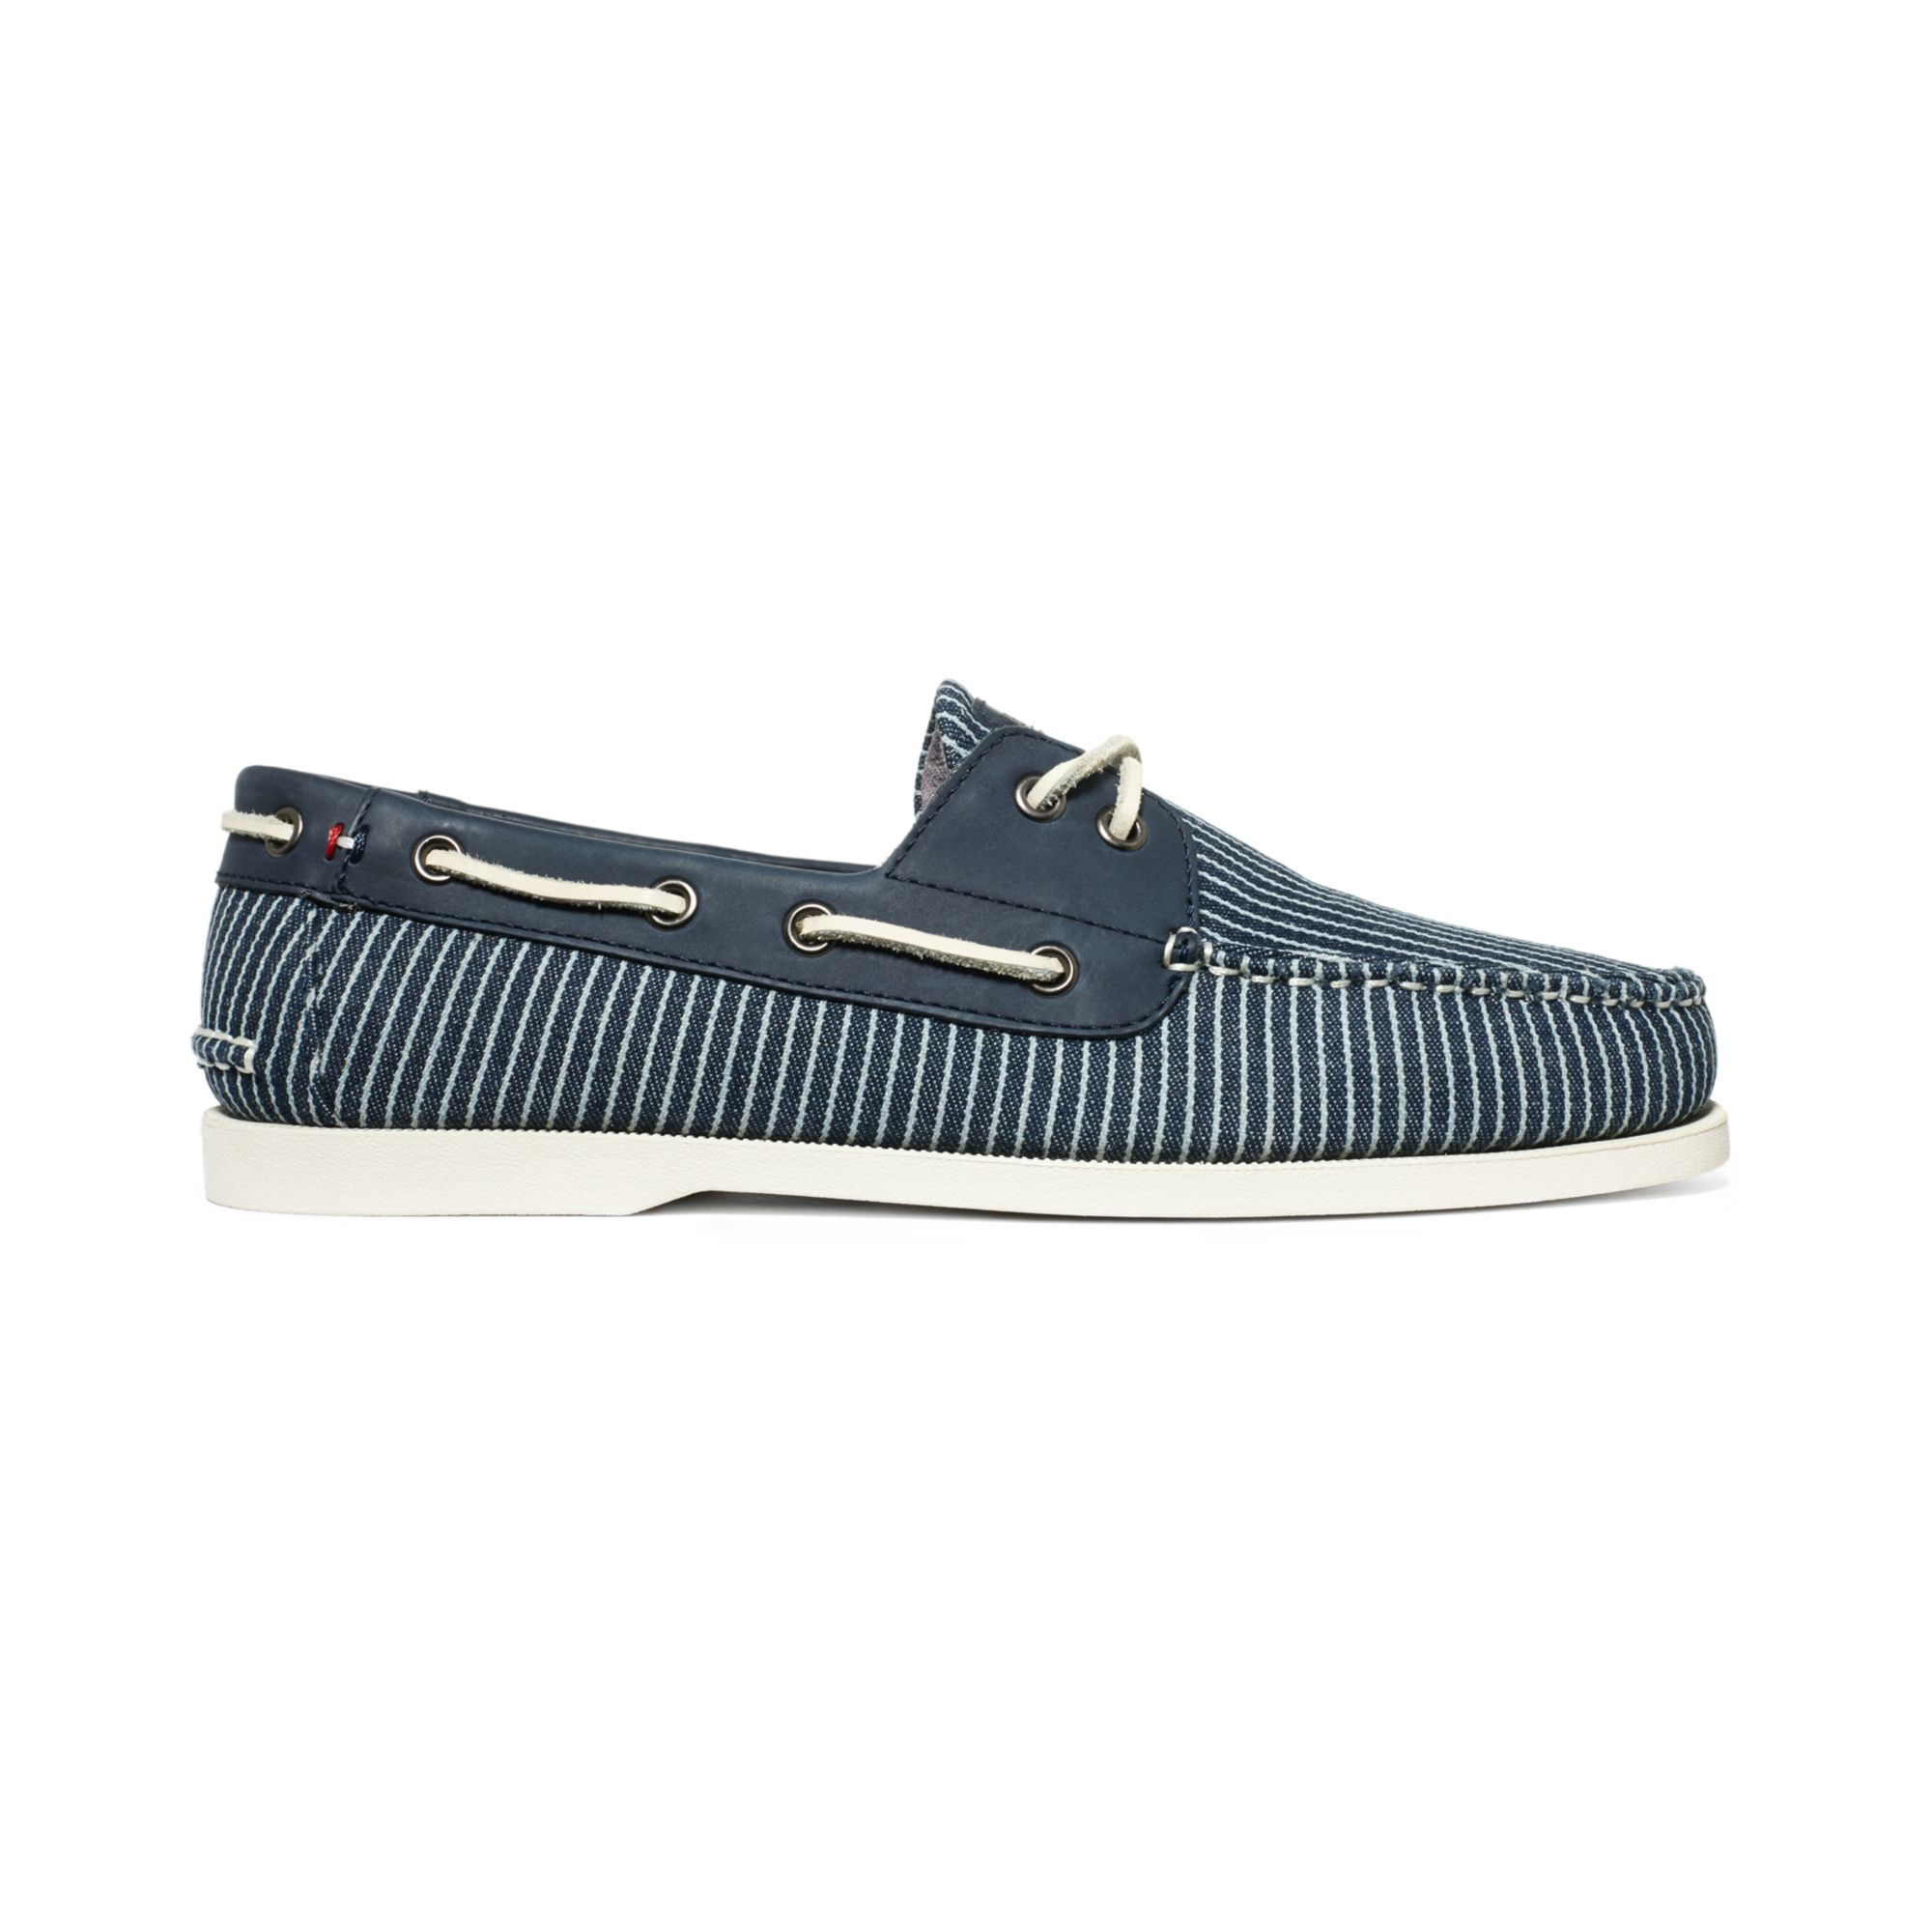 9c541a016fb7e Lyst - Tommy Hilfiger Bowman 2 Boat Shoes in Blue for Men